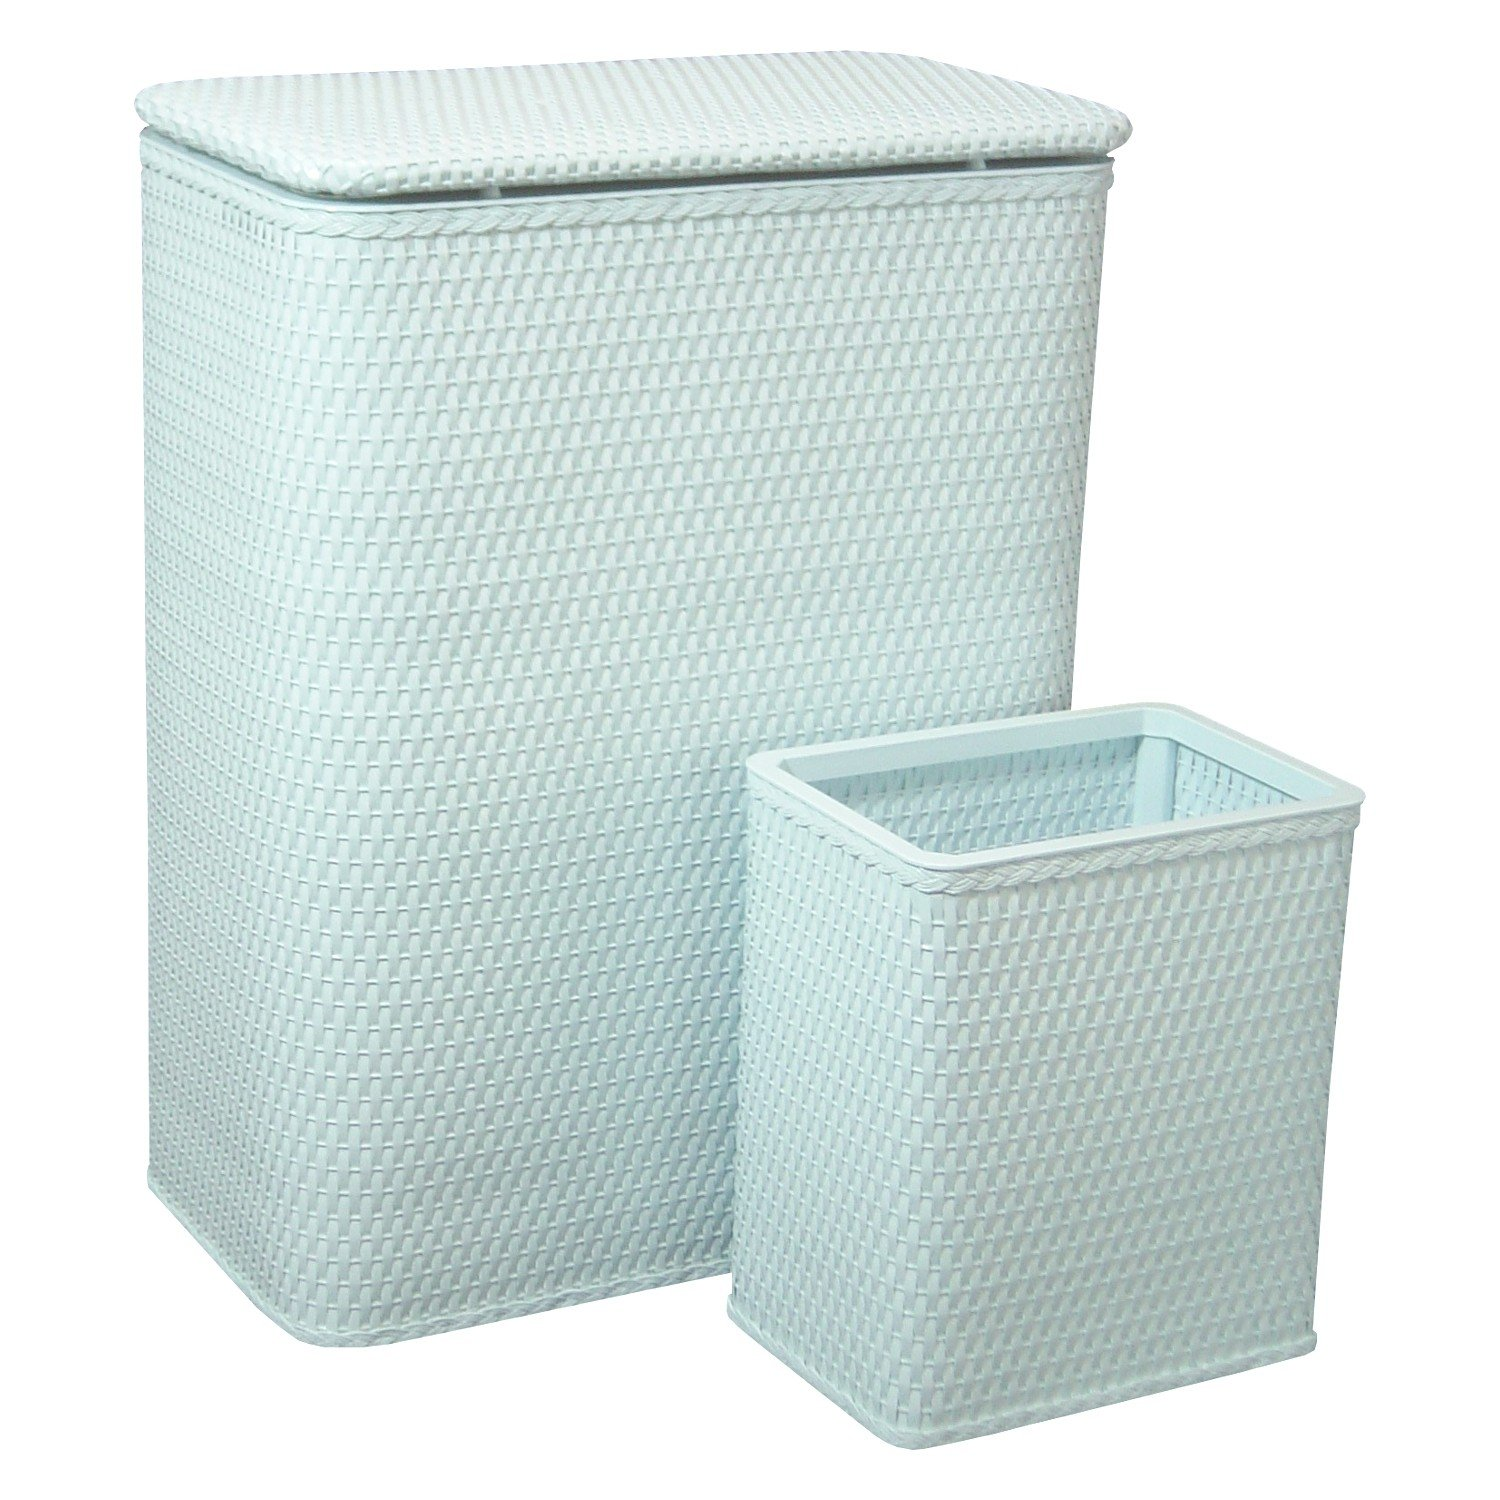 Redmon CHELSEA COLLECTION HAMPER AND MATCHING WASTEBASKET SET 4262IB